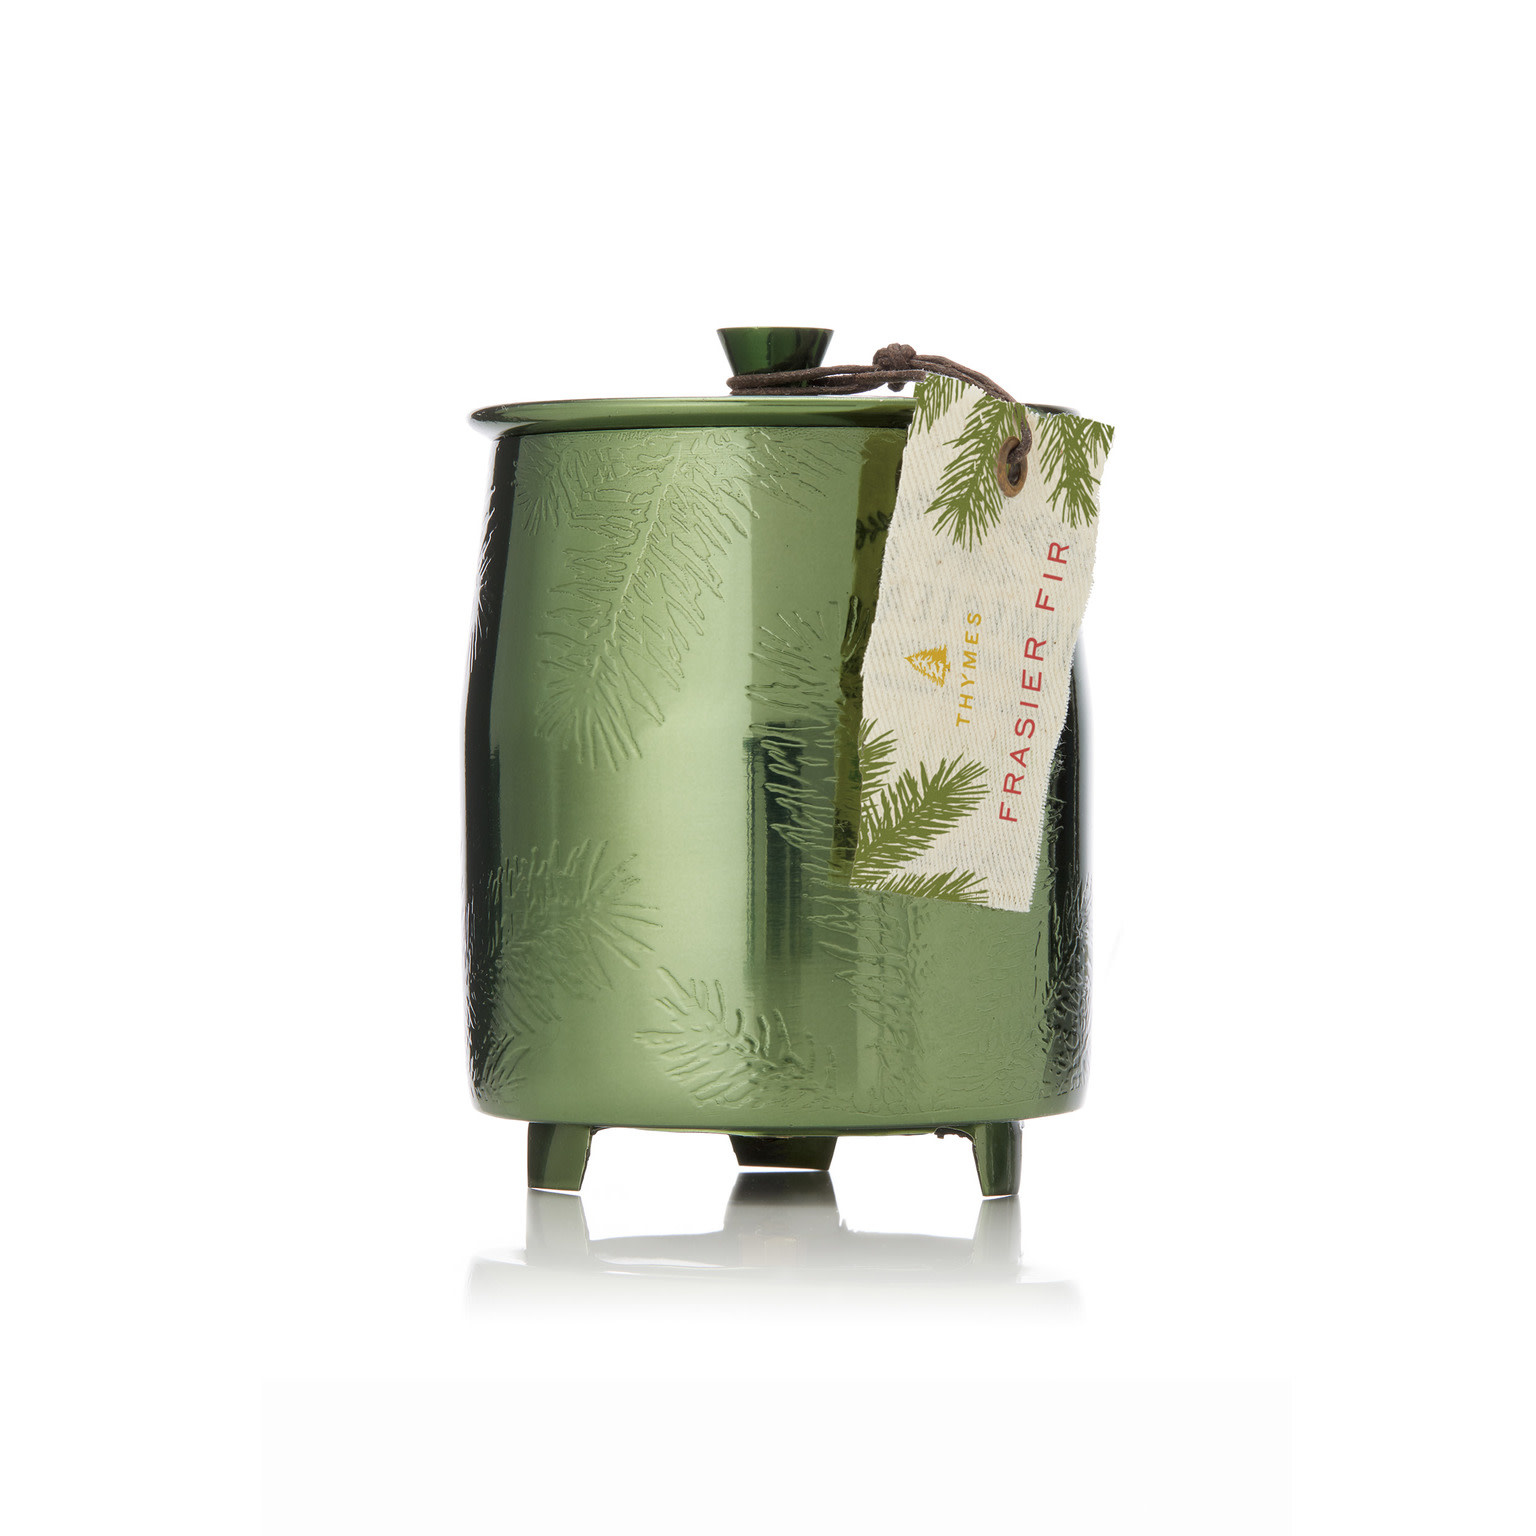 Thymes Green Metal Fir Candle